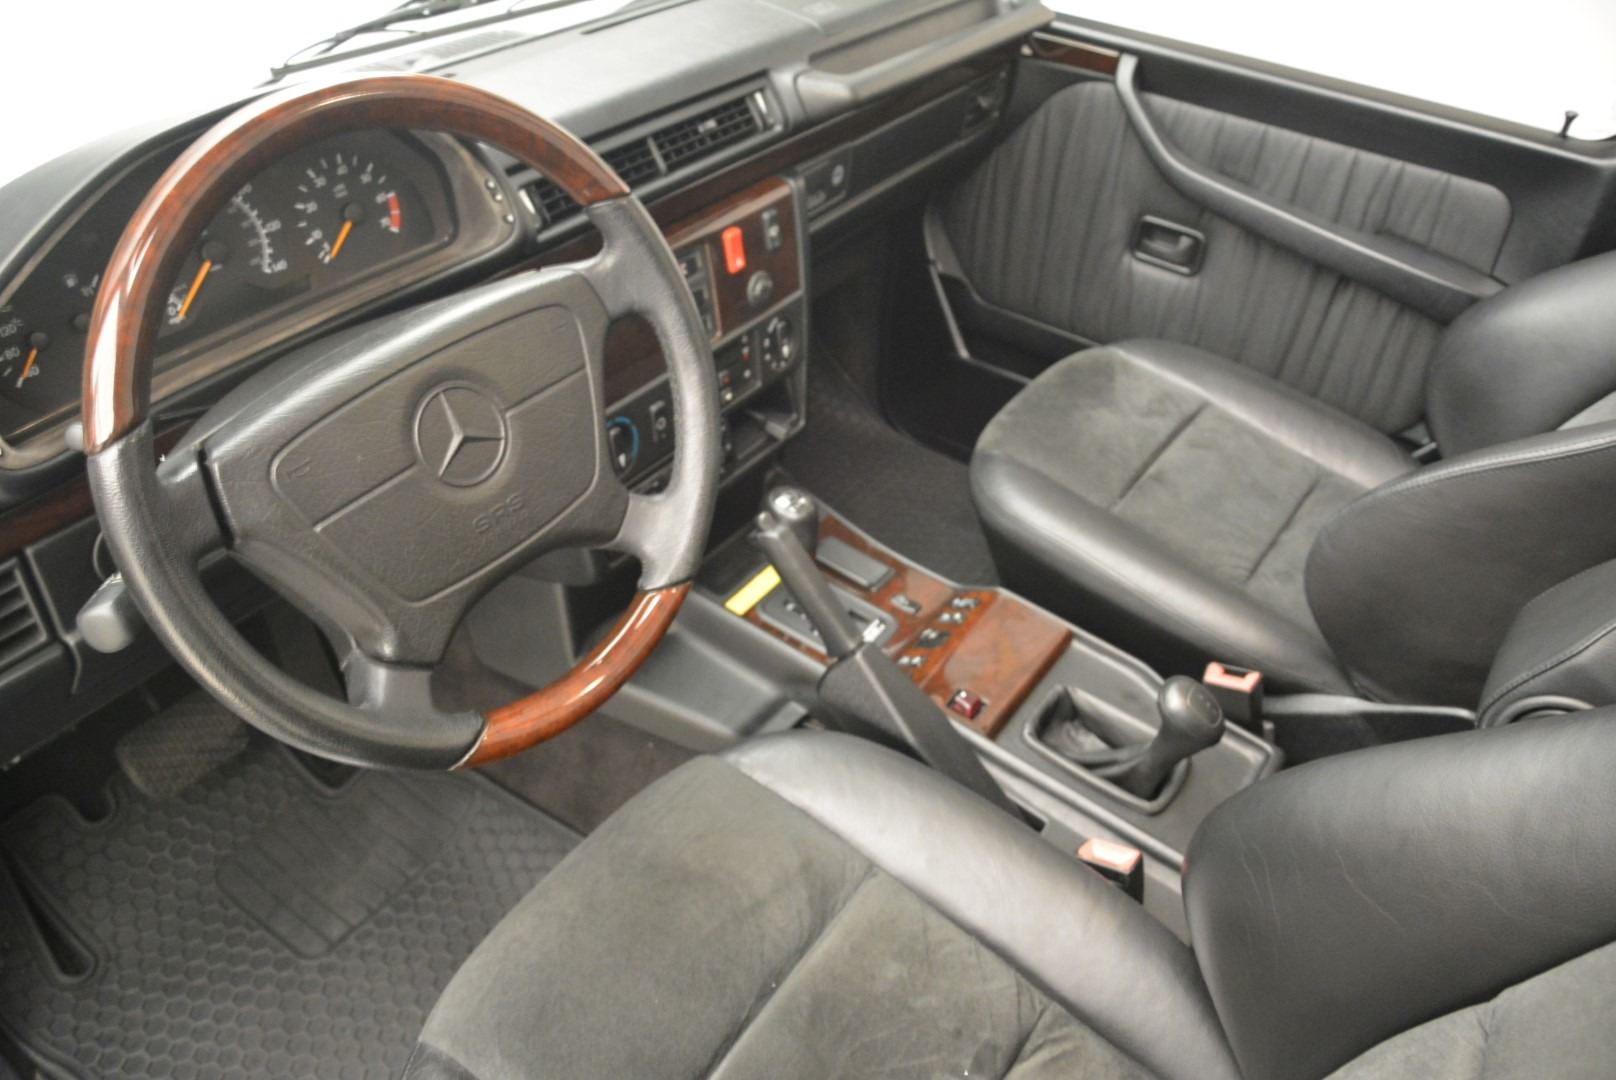 Used 2000 Mercedes-Benz G500 RENNTech  For Sale In Greenwich, CT 2184_p13